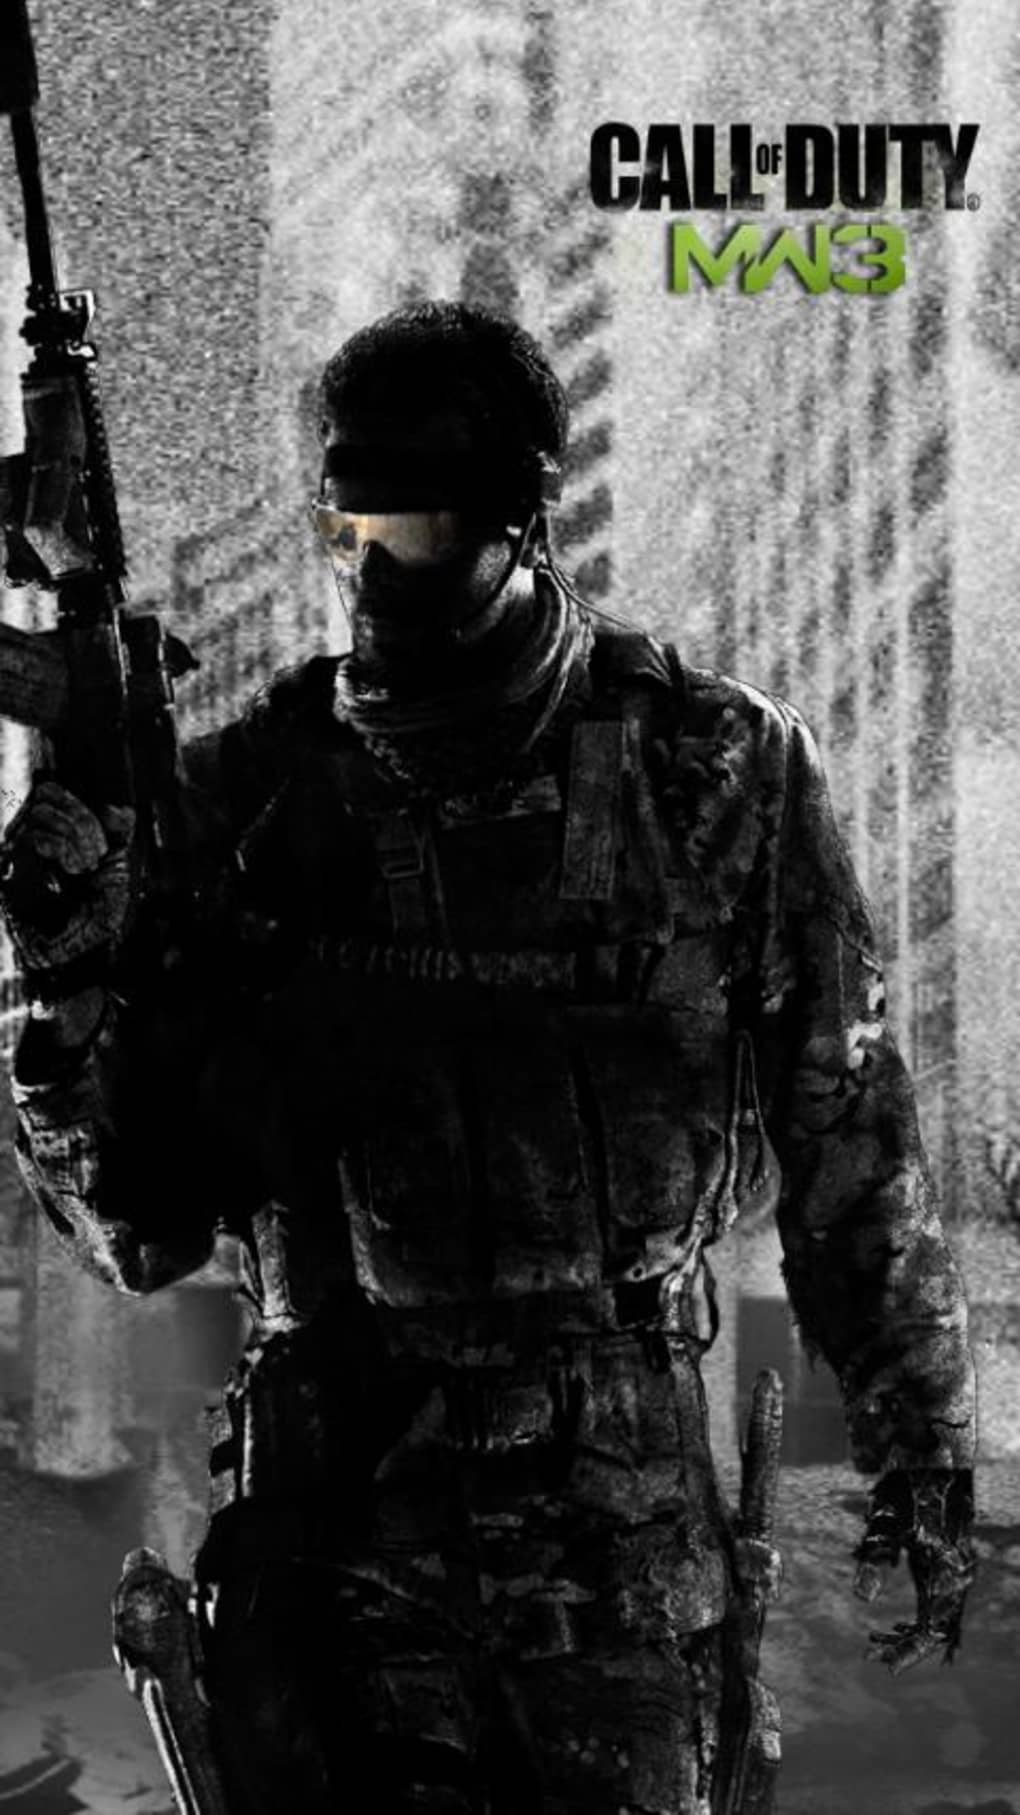 Mw3 Live Wallpaper Para Android Descargar